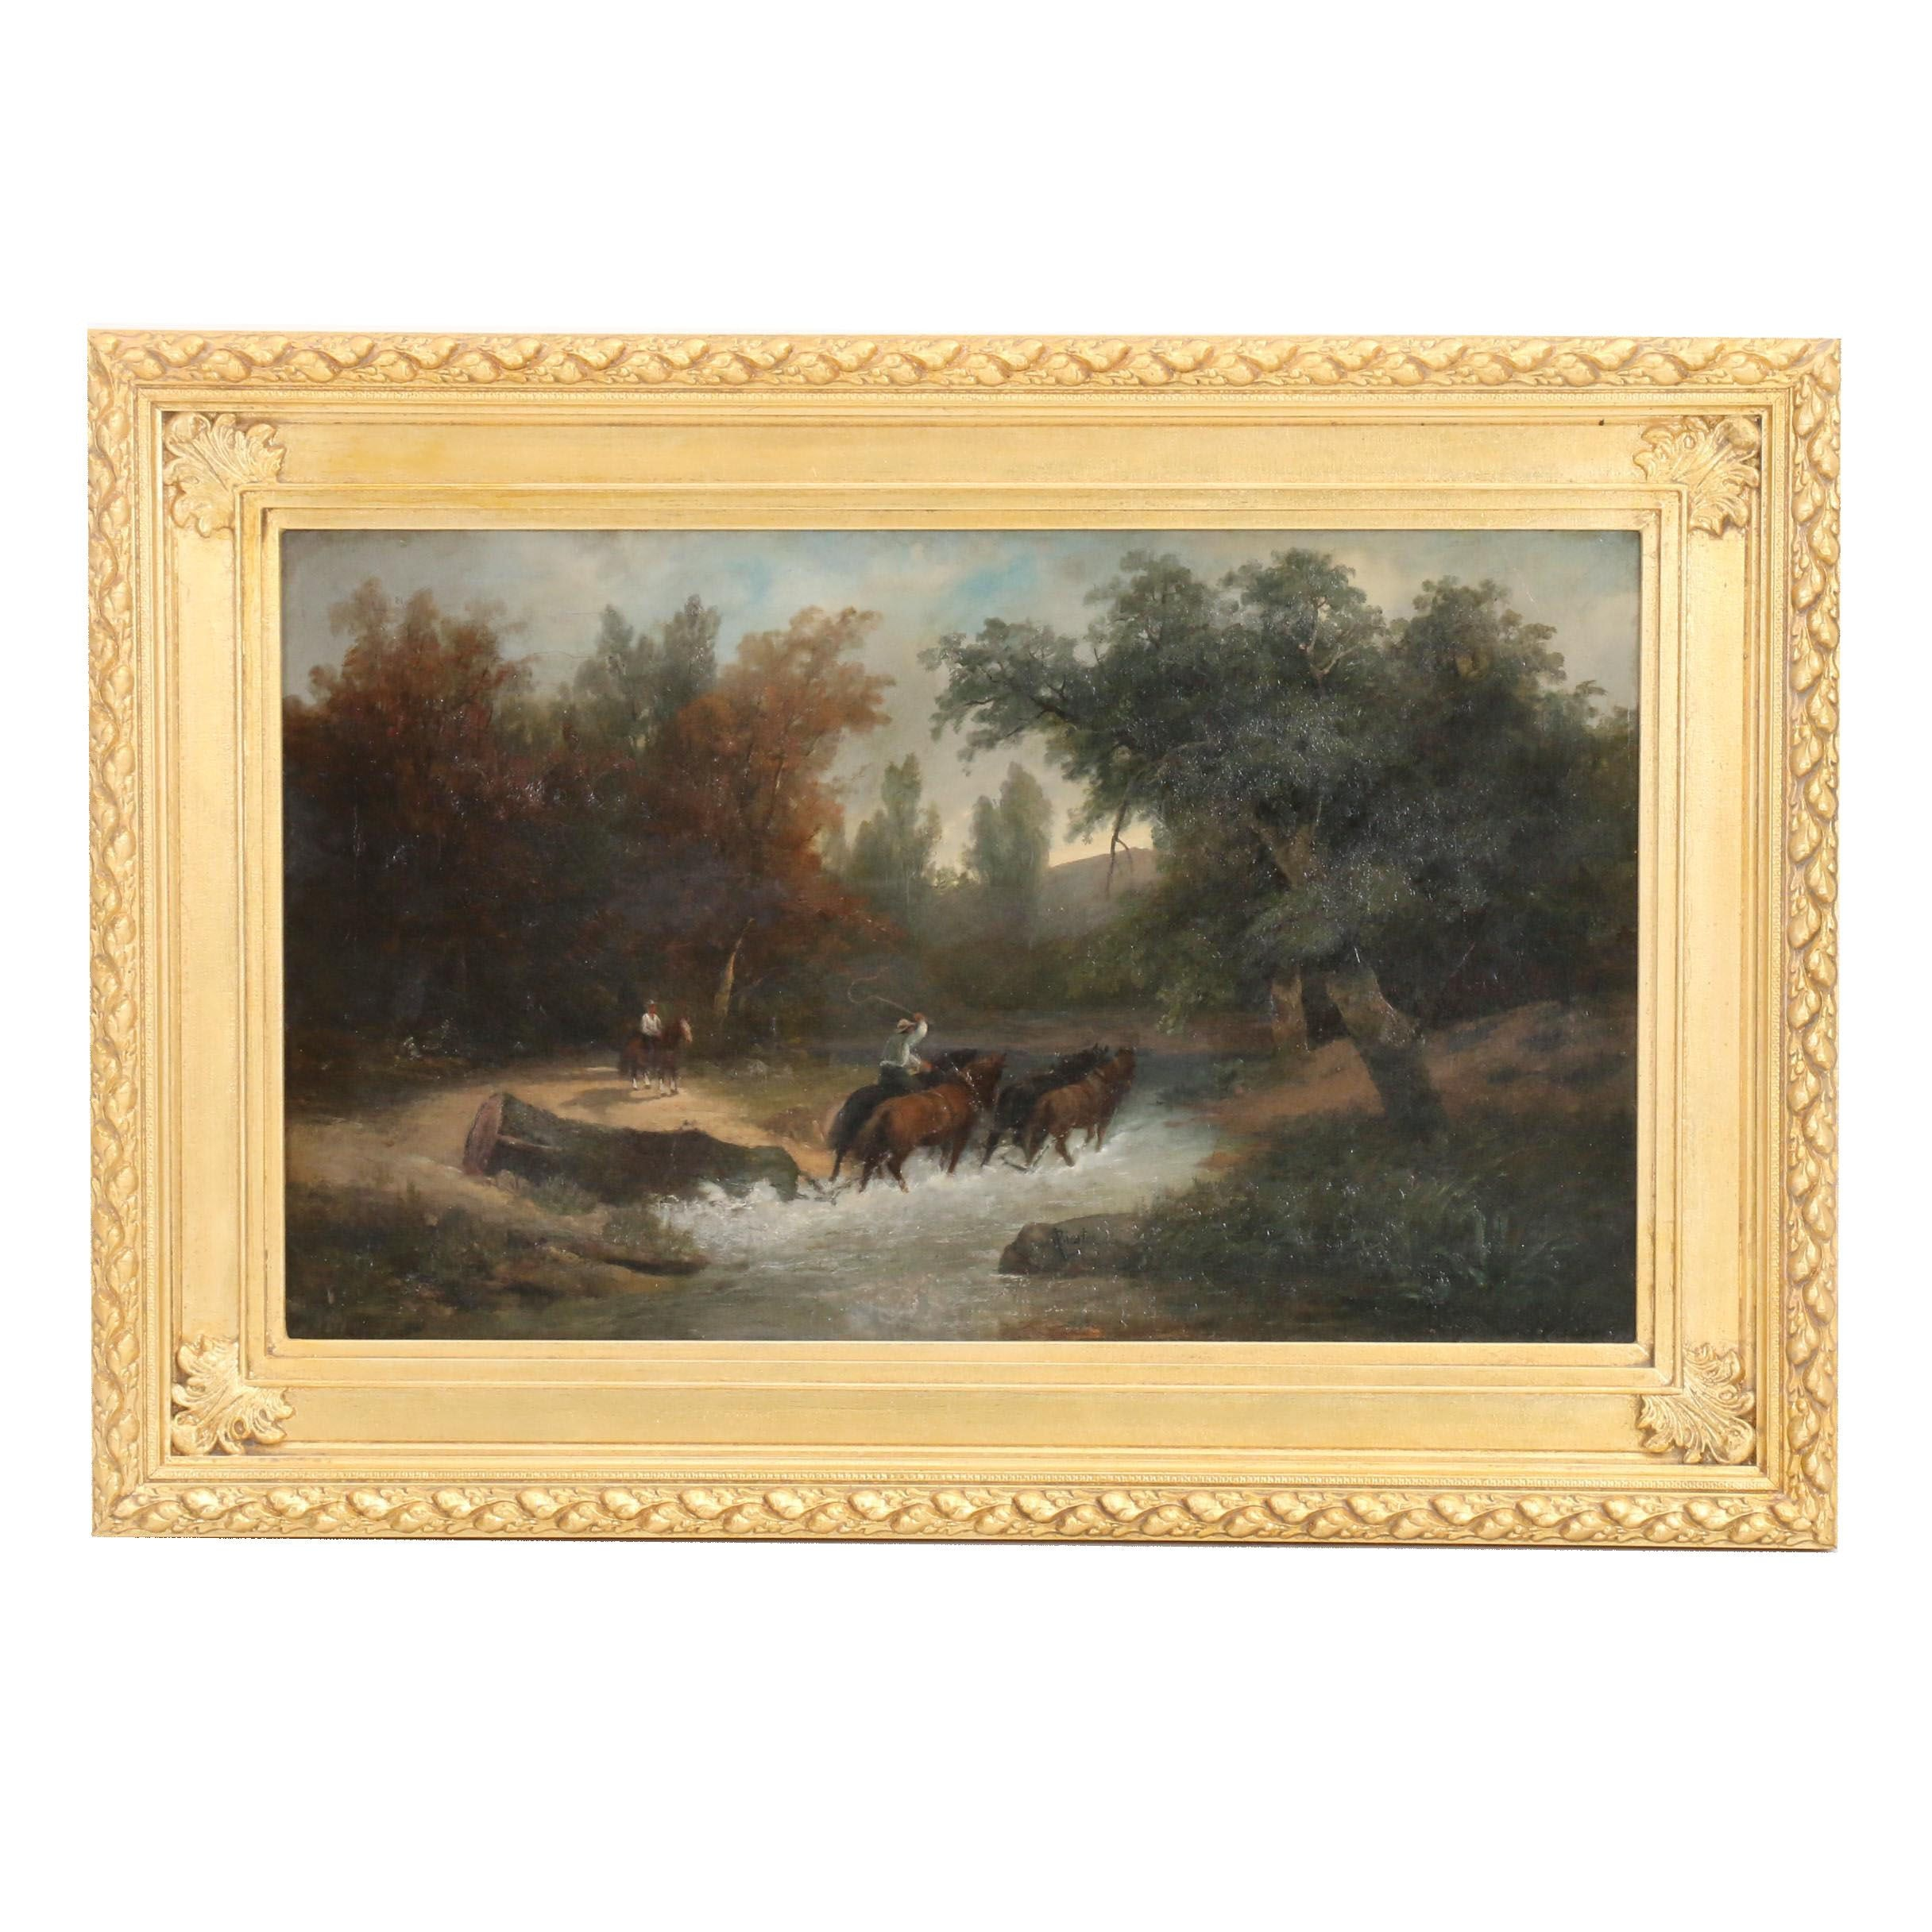 Anthony Biester Oil Painting of Figures on Horseback in Landscape